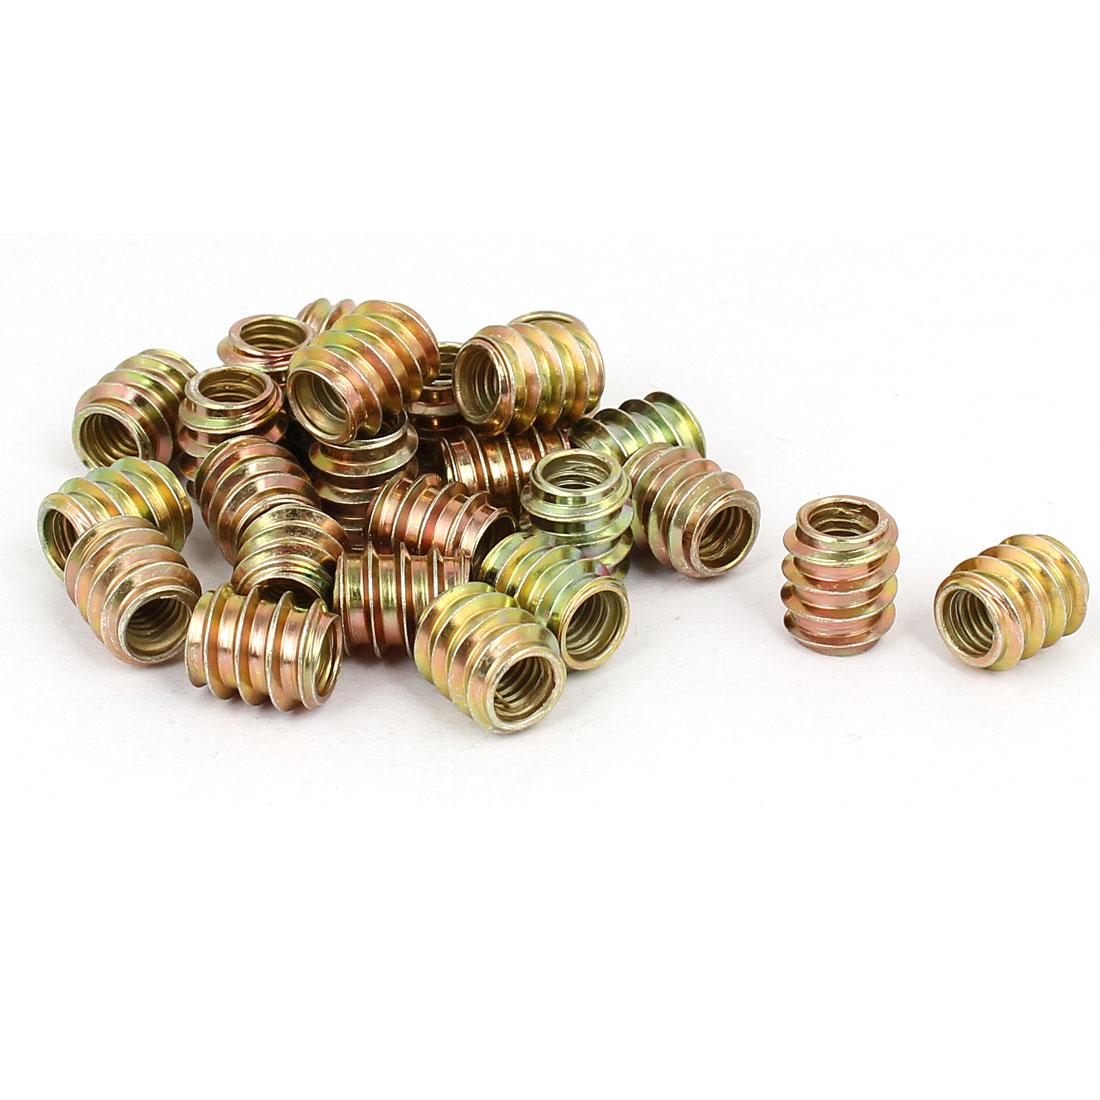 Wood Furniture Insert Fixing Screw E-Nut Bronze Tone M6 x 12mm 25pcs